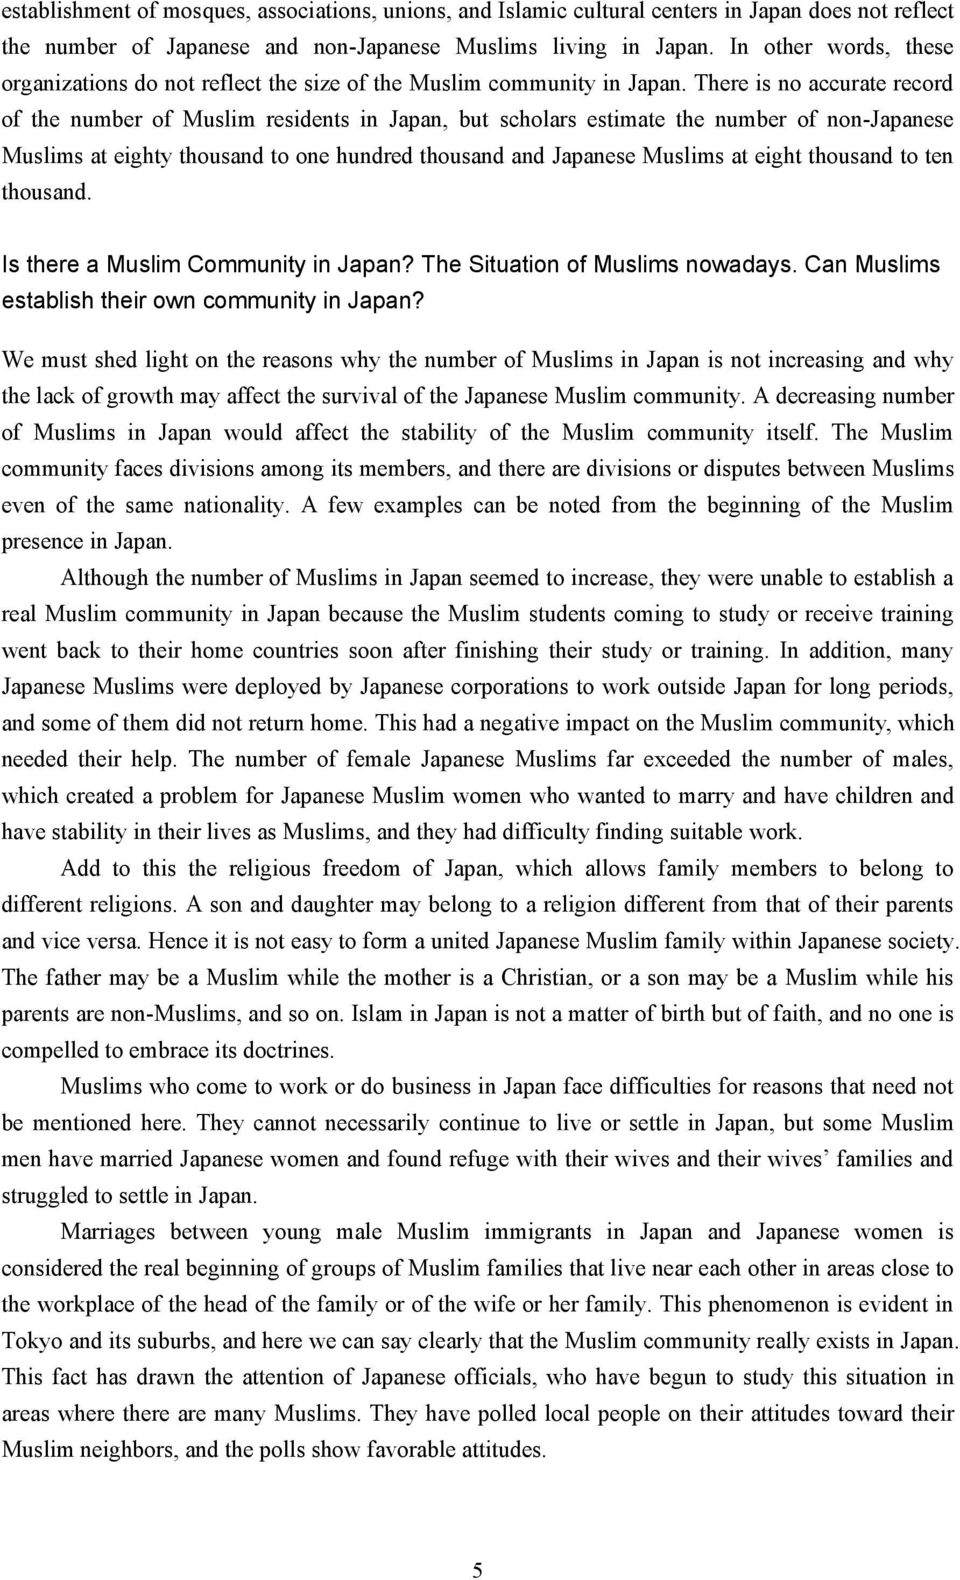 There is no accurate record of the number of Muslim residents in Japan, but scholars estimate the number of non-japanese Muslims at eighty thousand to one hundred thousand and Japanese Muslims at